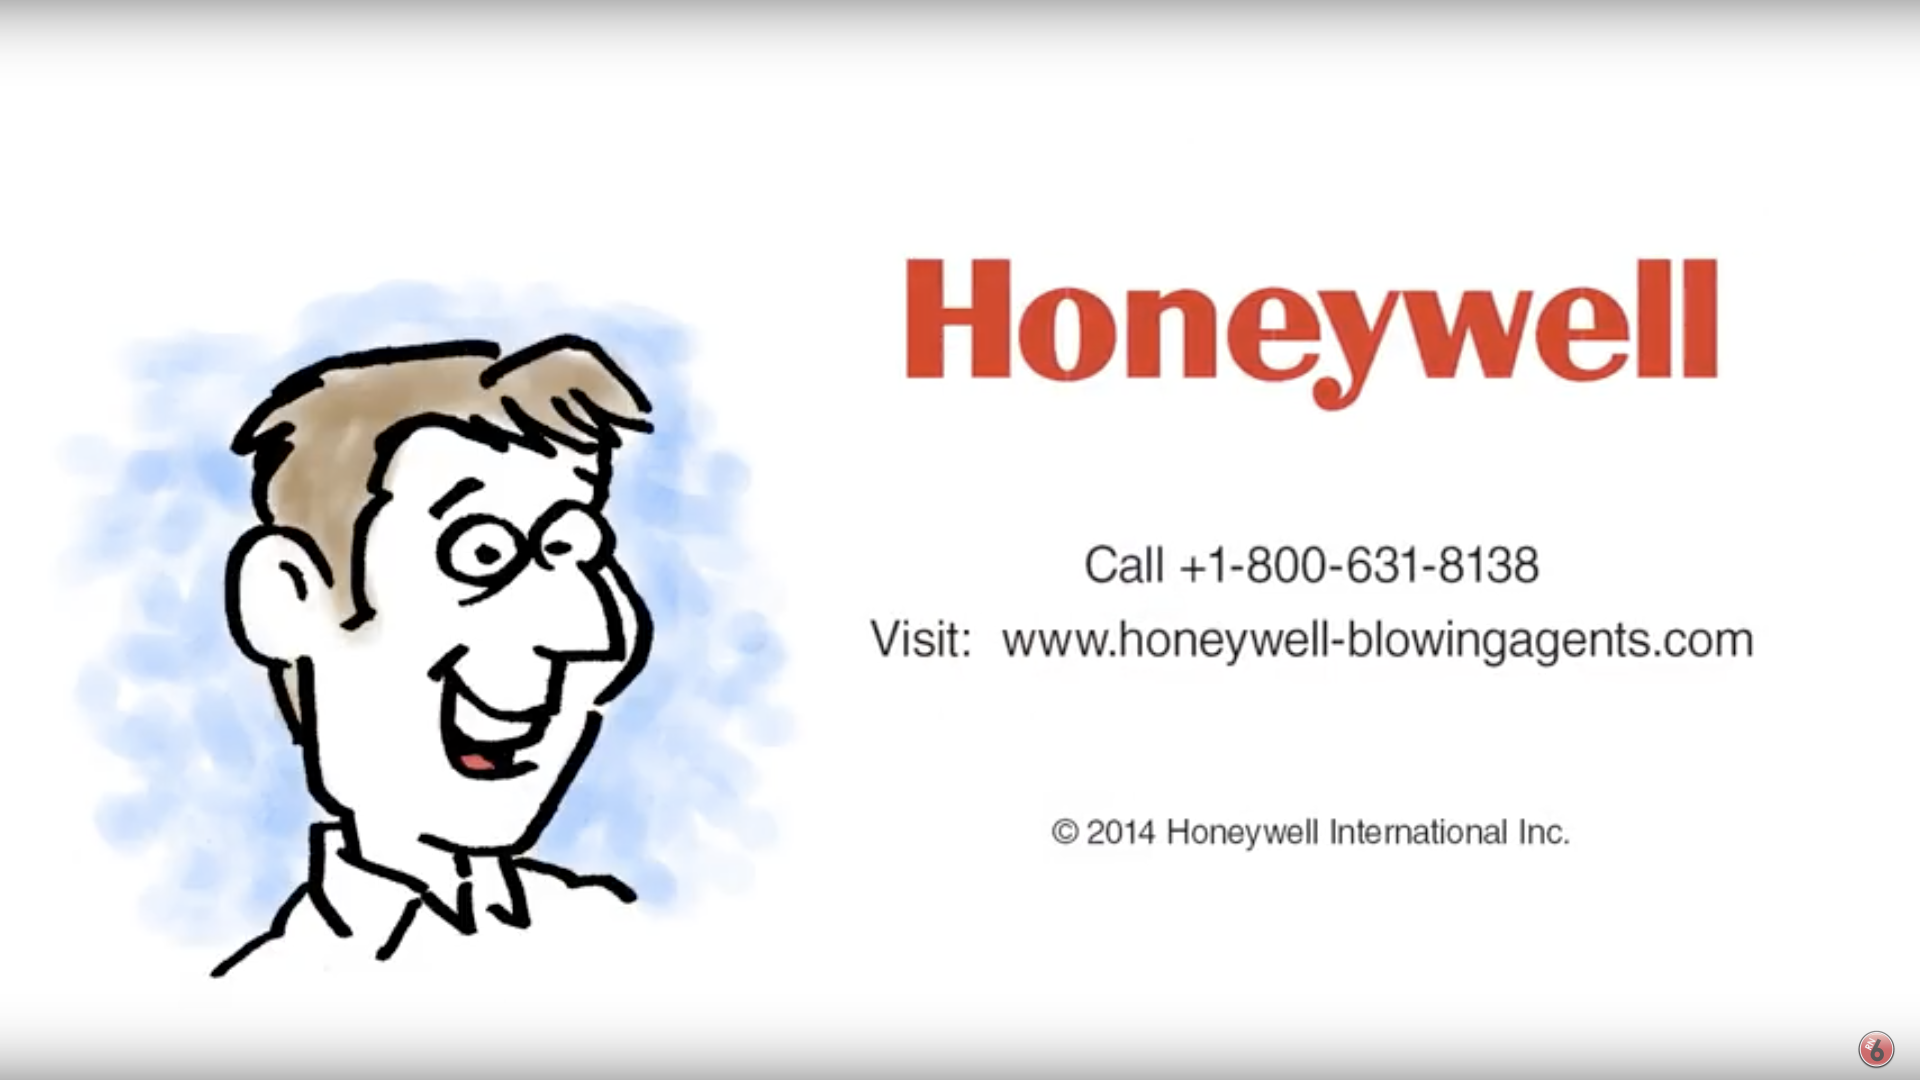 A logo for Honeywell with a phone number reading +1-800-631-8138. Visit the website at www.honeywell-blowingagents.com. Honeywell is a Red Noise 6 client.